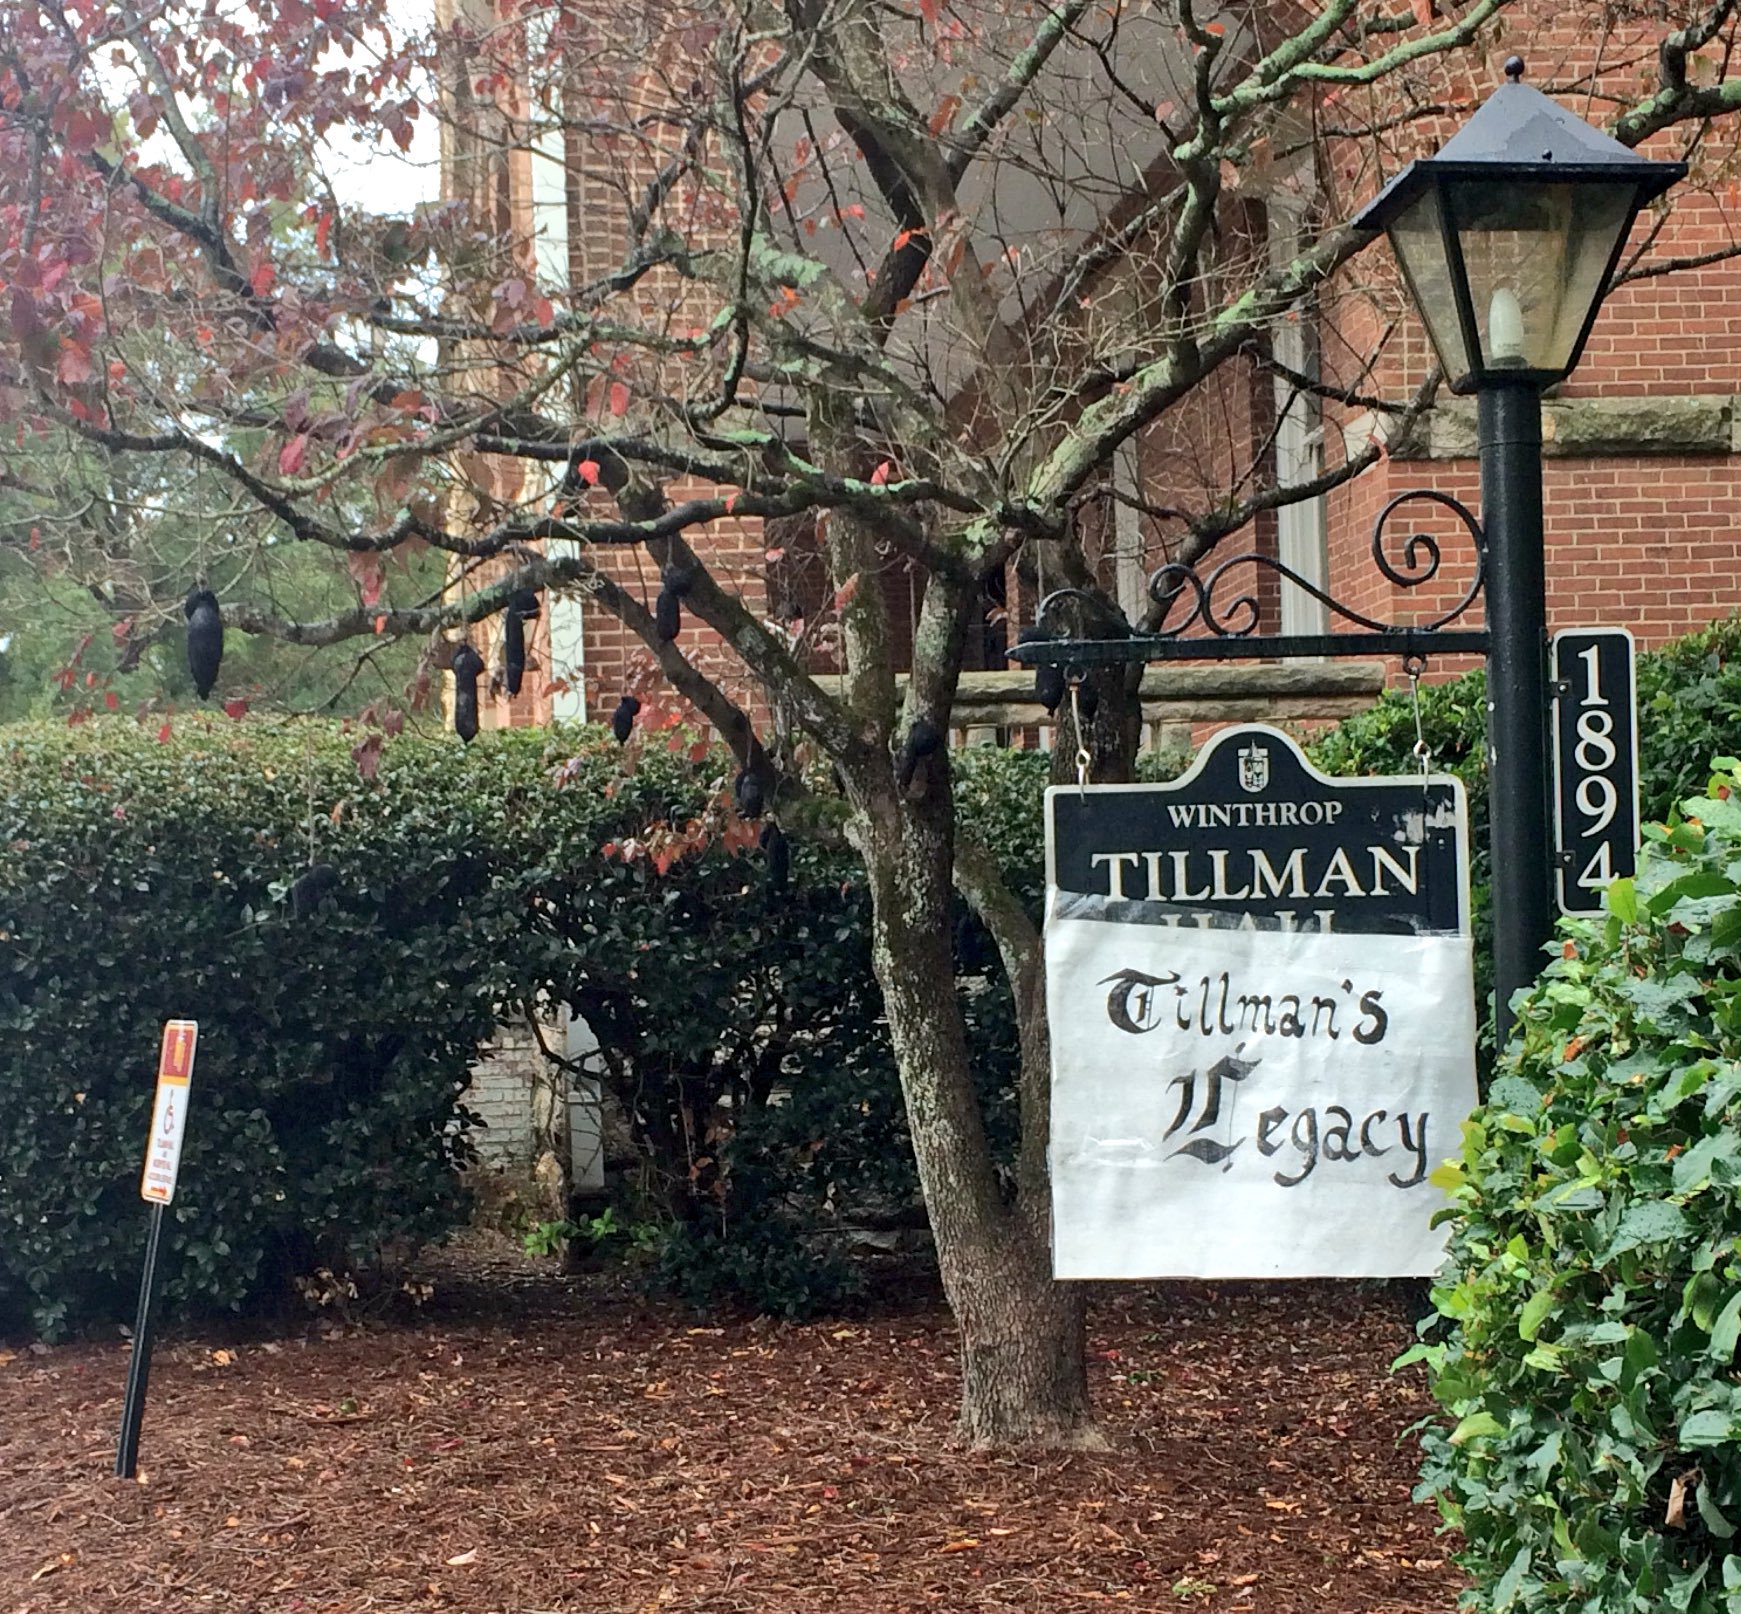 Winthrop University - Tillman Hall